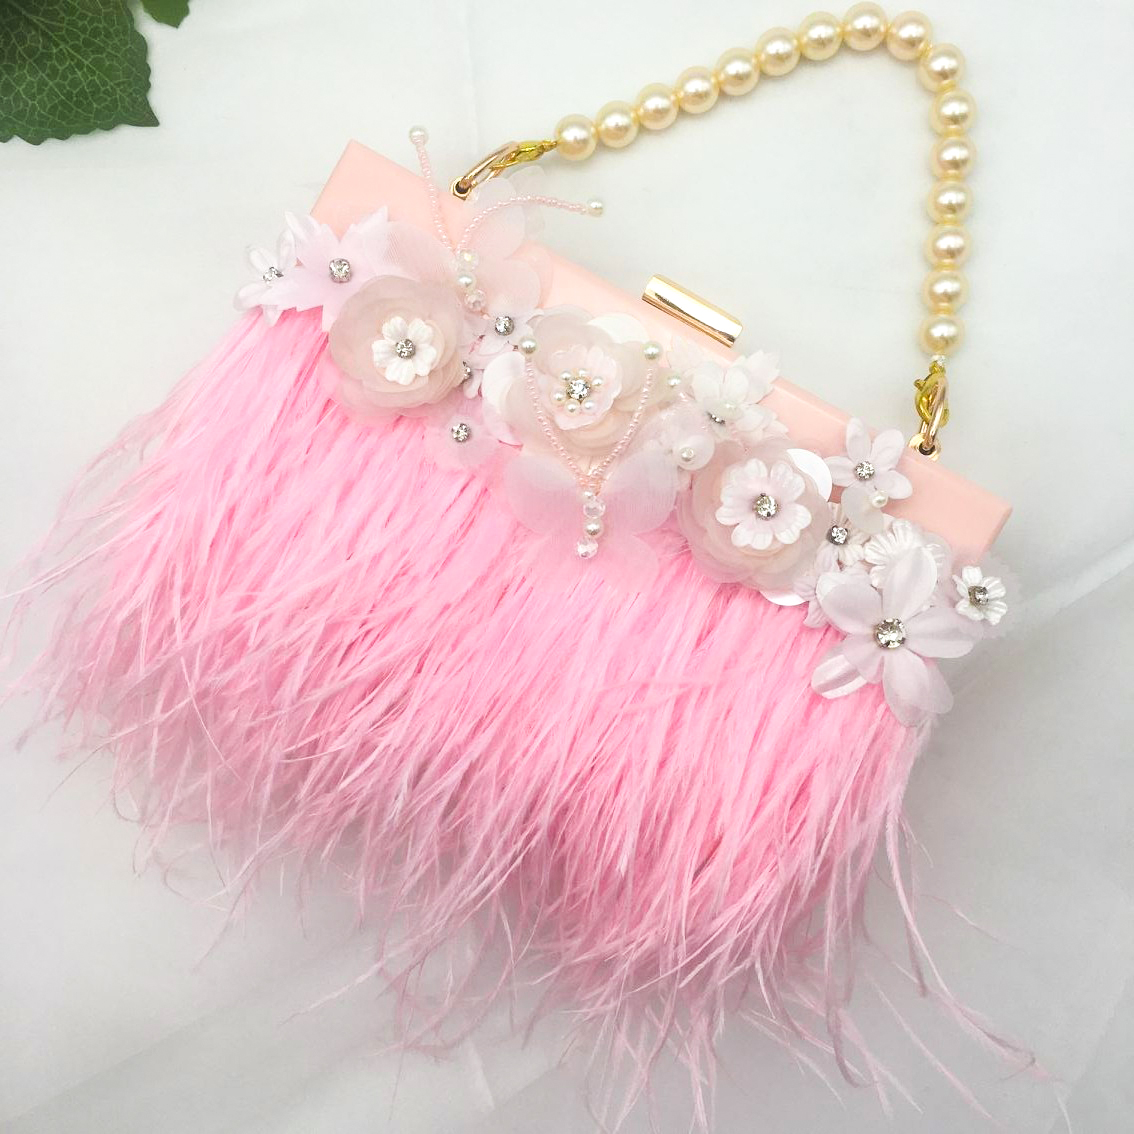 day clutches original Custom small bag girl 2018 new immortals flap wrapped pink feathers white lace flowers butterfly handbag chinese antique furniture of ming and qing dynasties copper fittings copper door wardrobe door handle round copper shoe handle